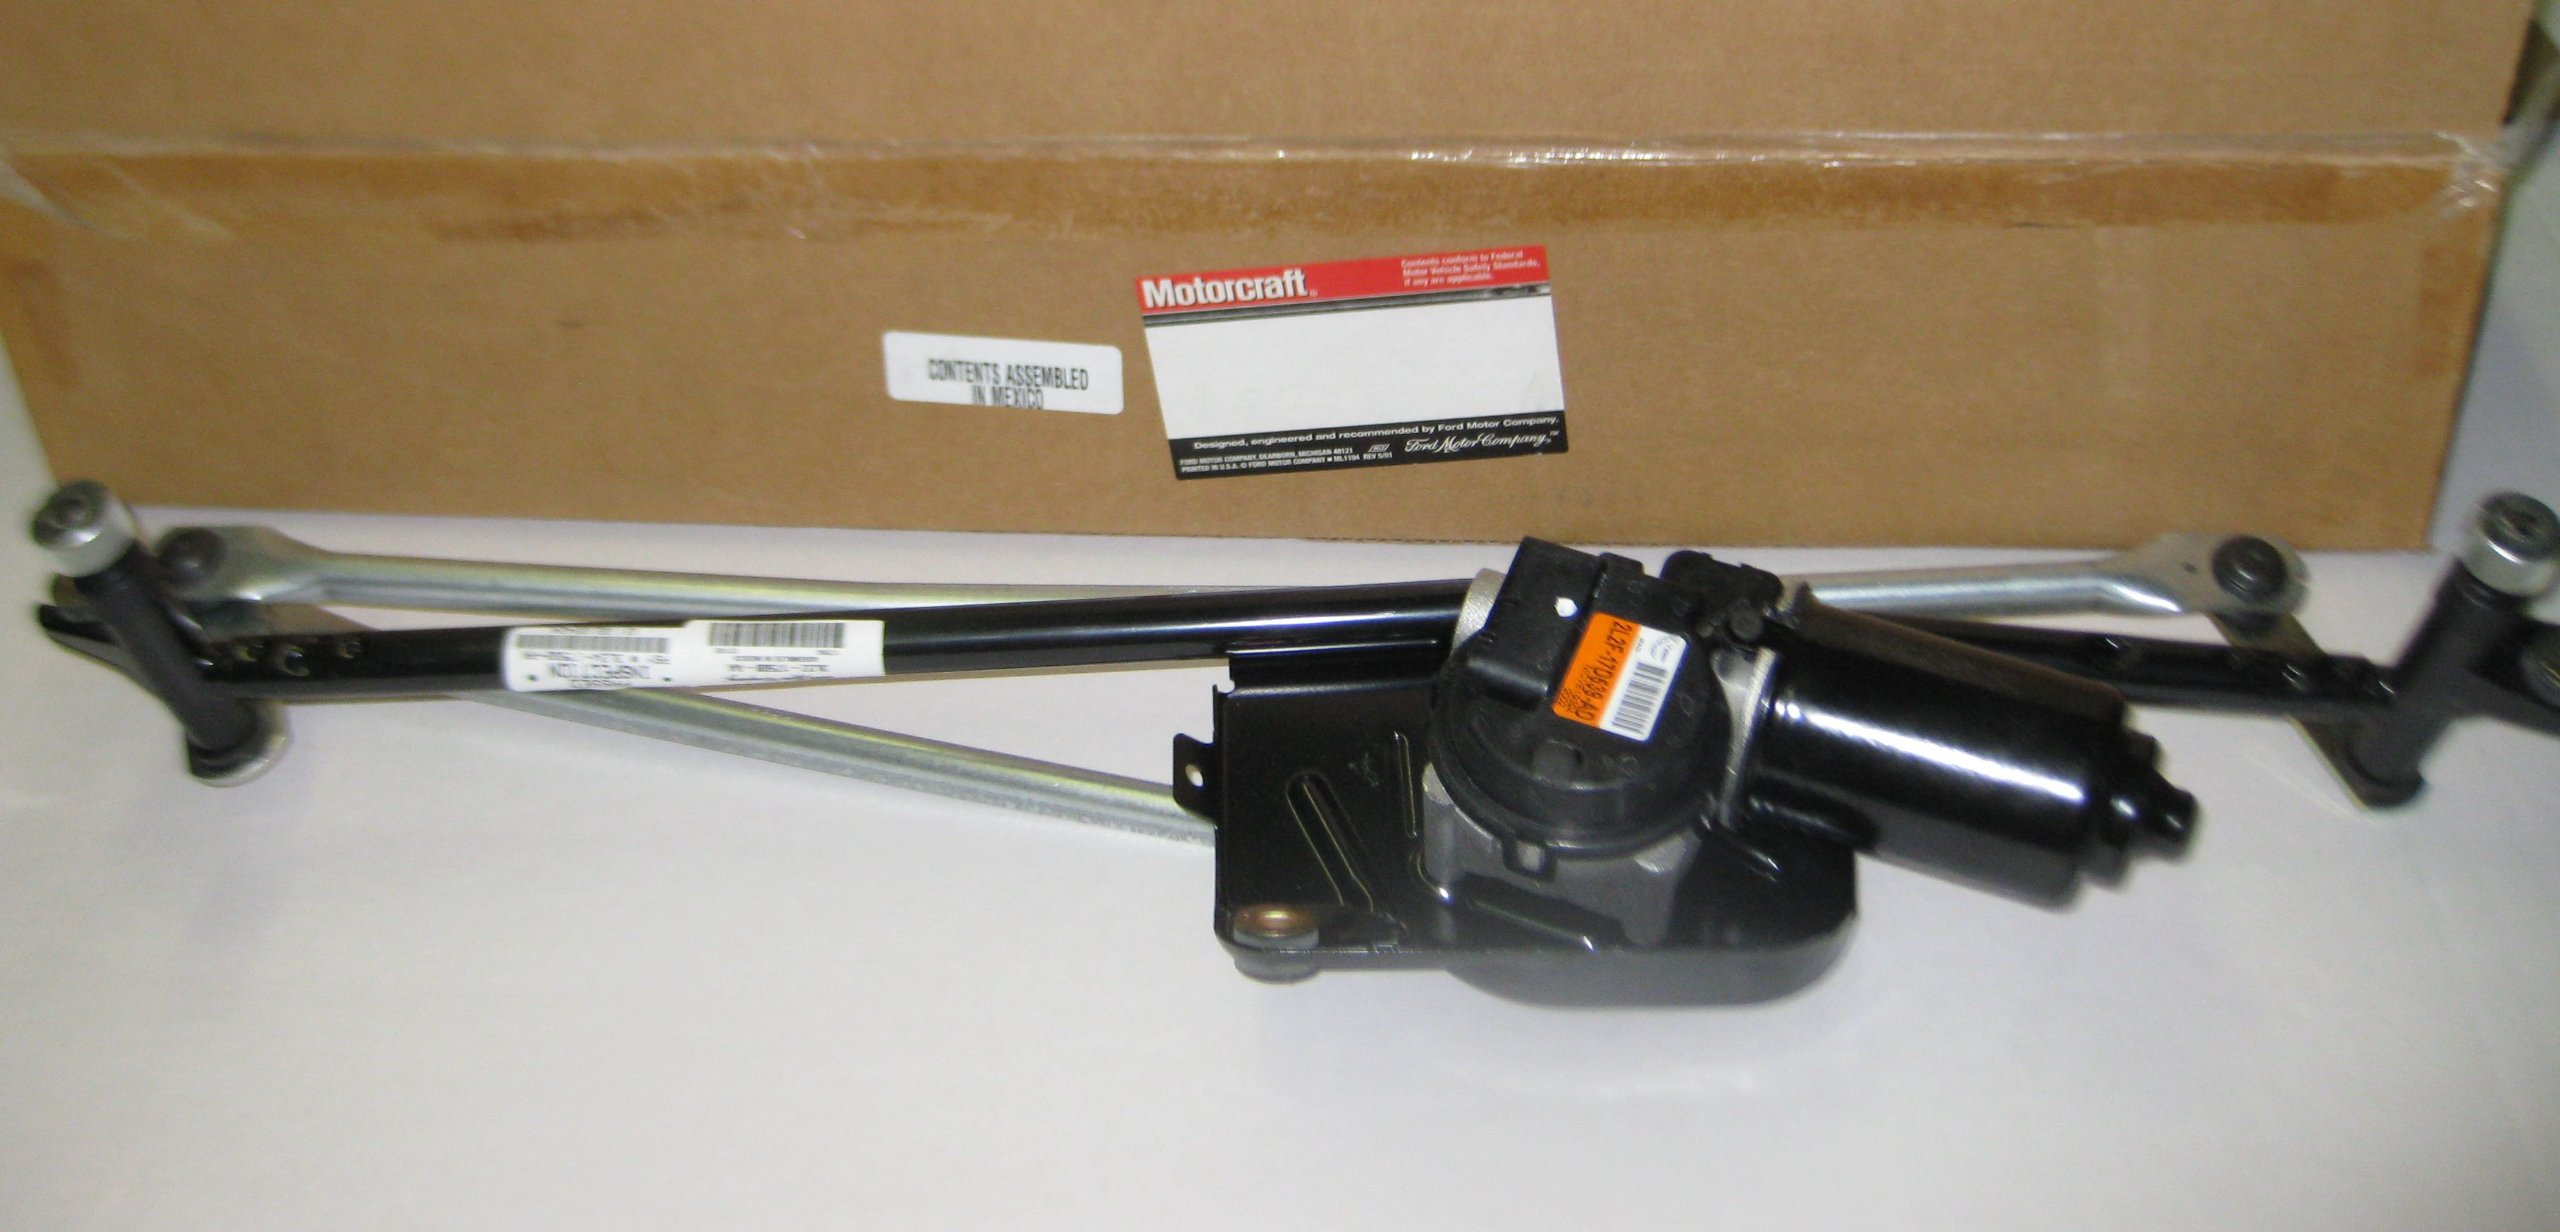 New Motocraft Original Front Windshield Wiper Motor W Linkage Assembly WM599 by MOTOCRAFT IN ORIGINAL BOX